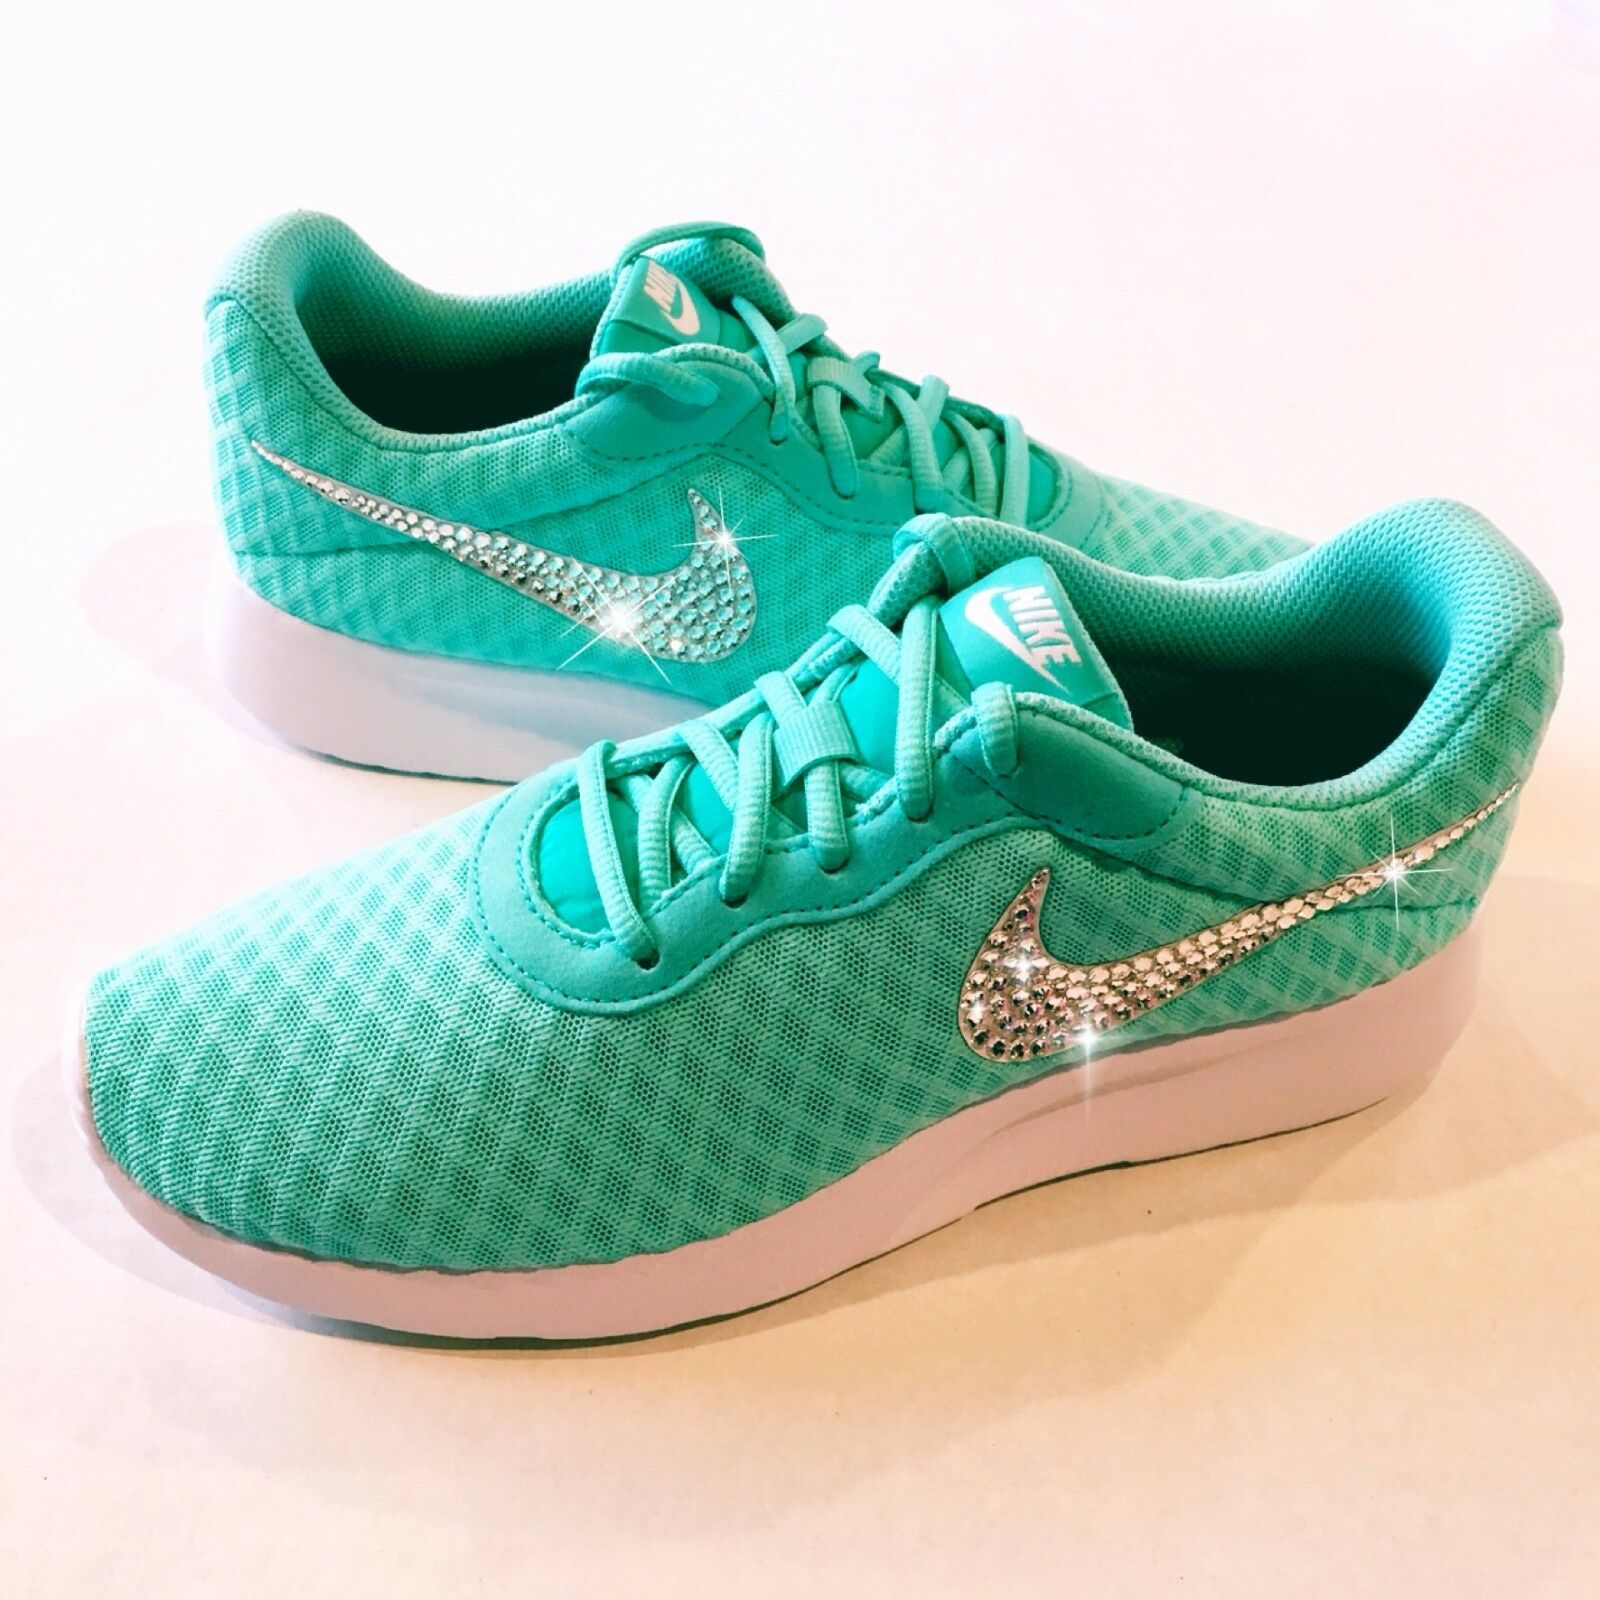 Bling My Nikes - Send in Your Nike Shoes for Swarovski Crystal Bedazzling